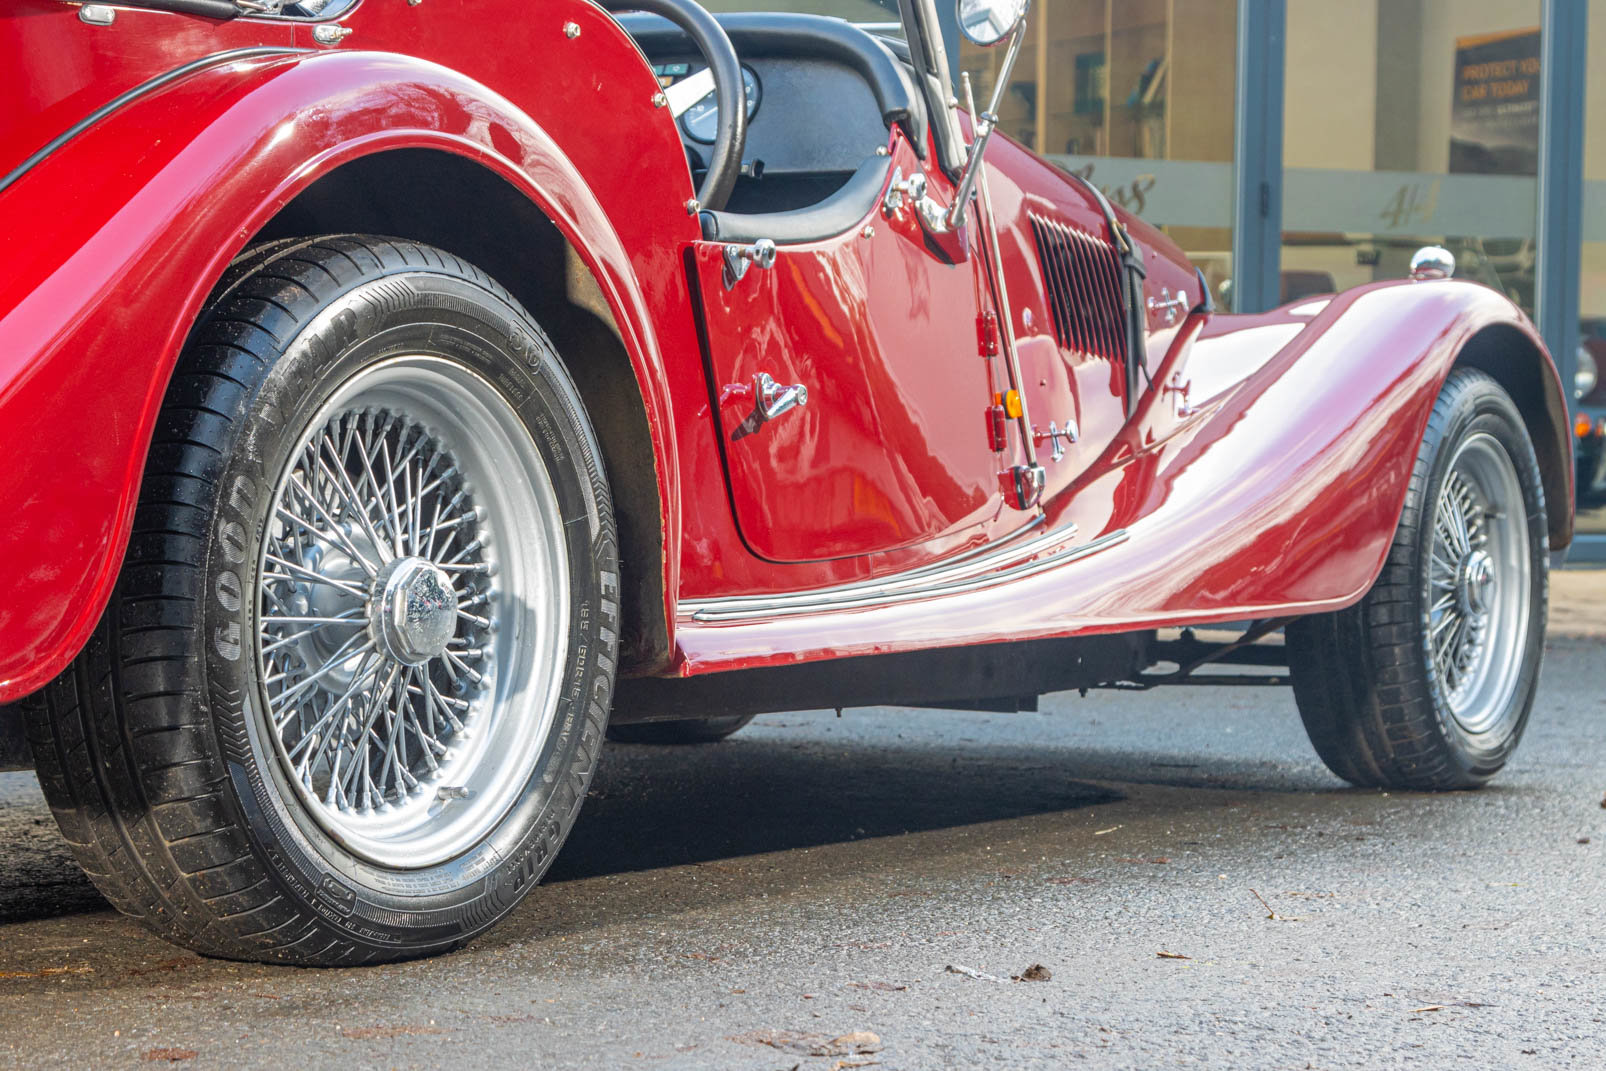 1991 Morgan Plus 4 4 seater For Sale (picture 2 of 6)